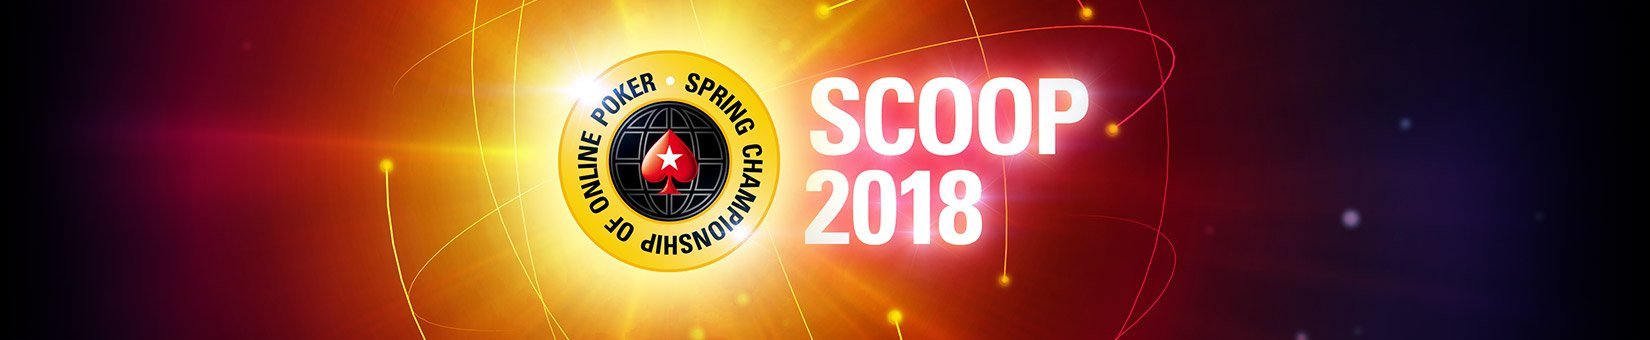 SCOOP 2018 by PokerStars: Complete Schedule